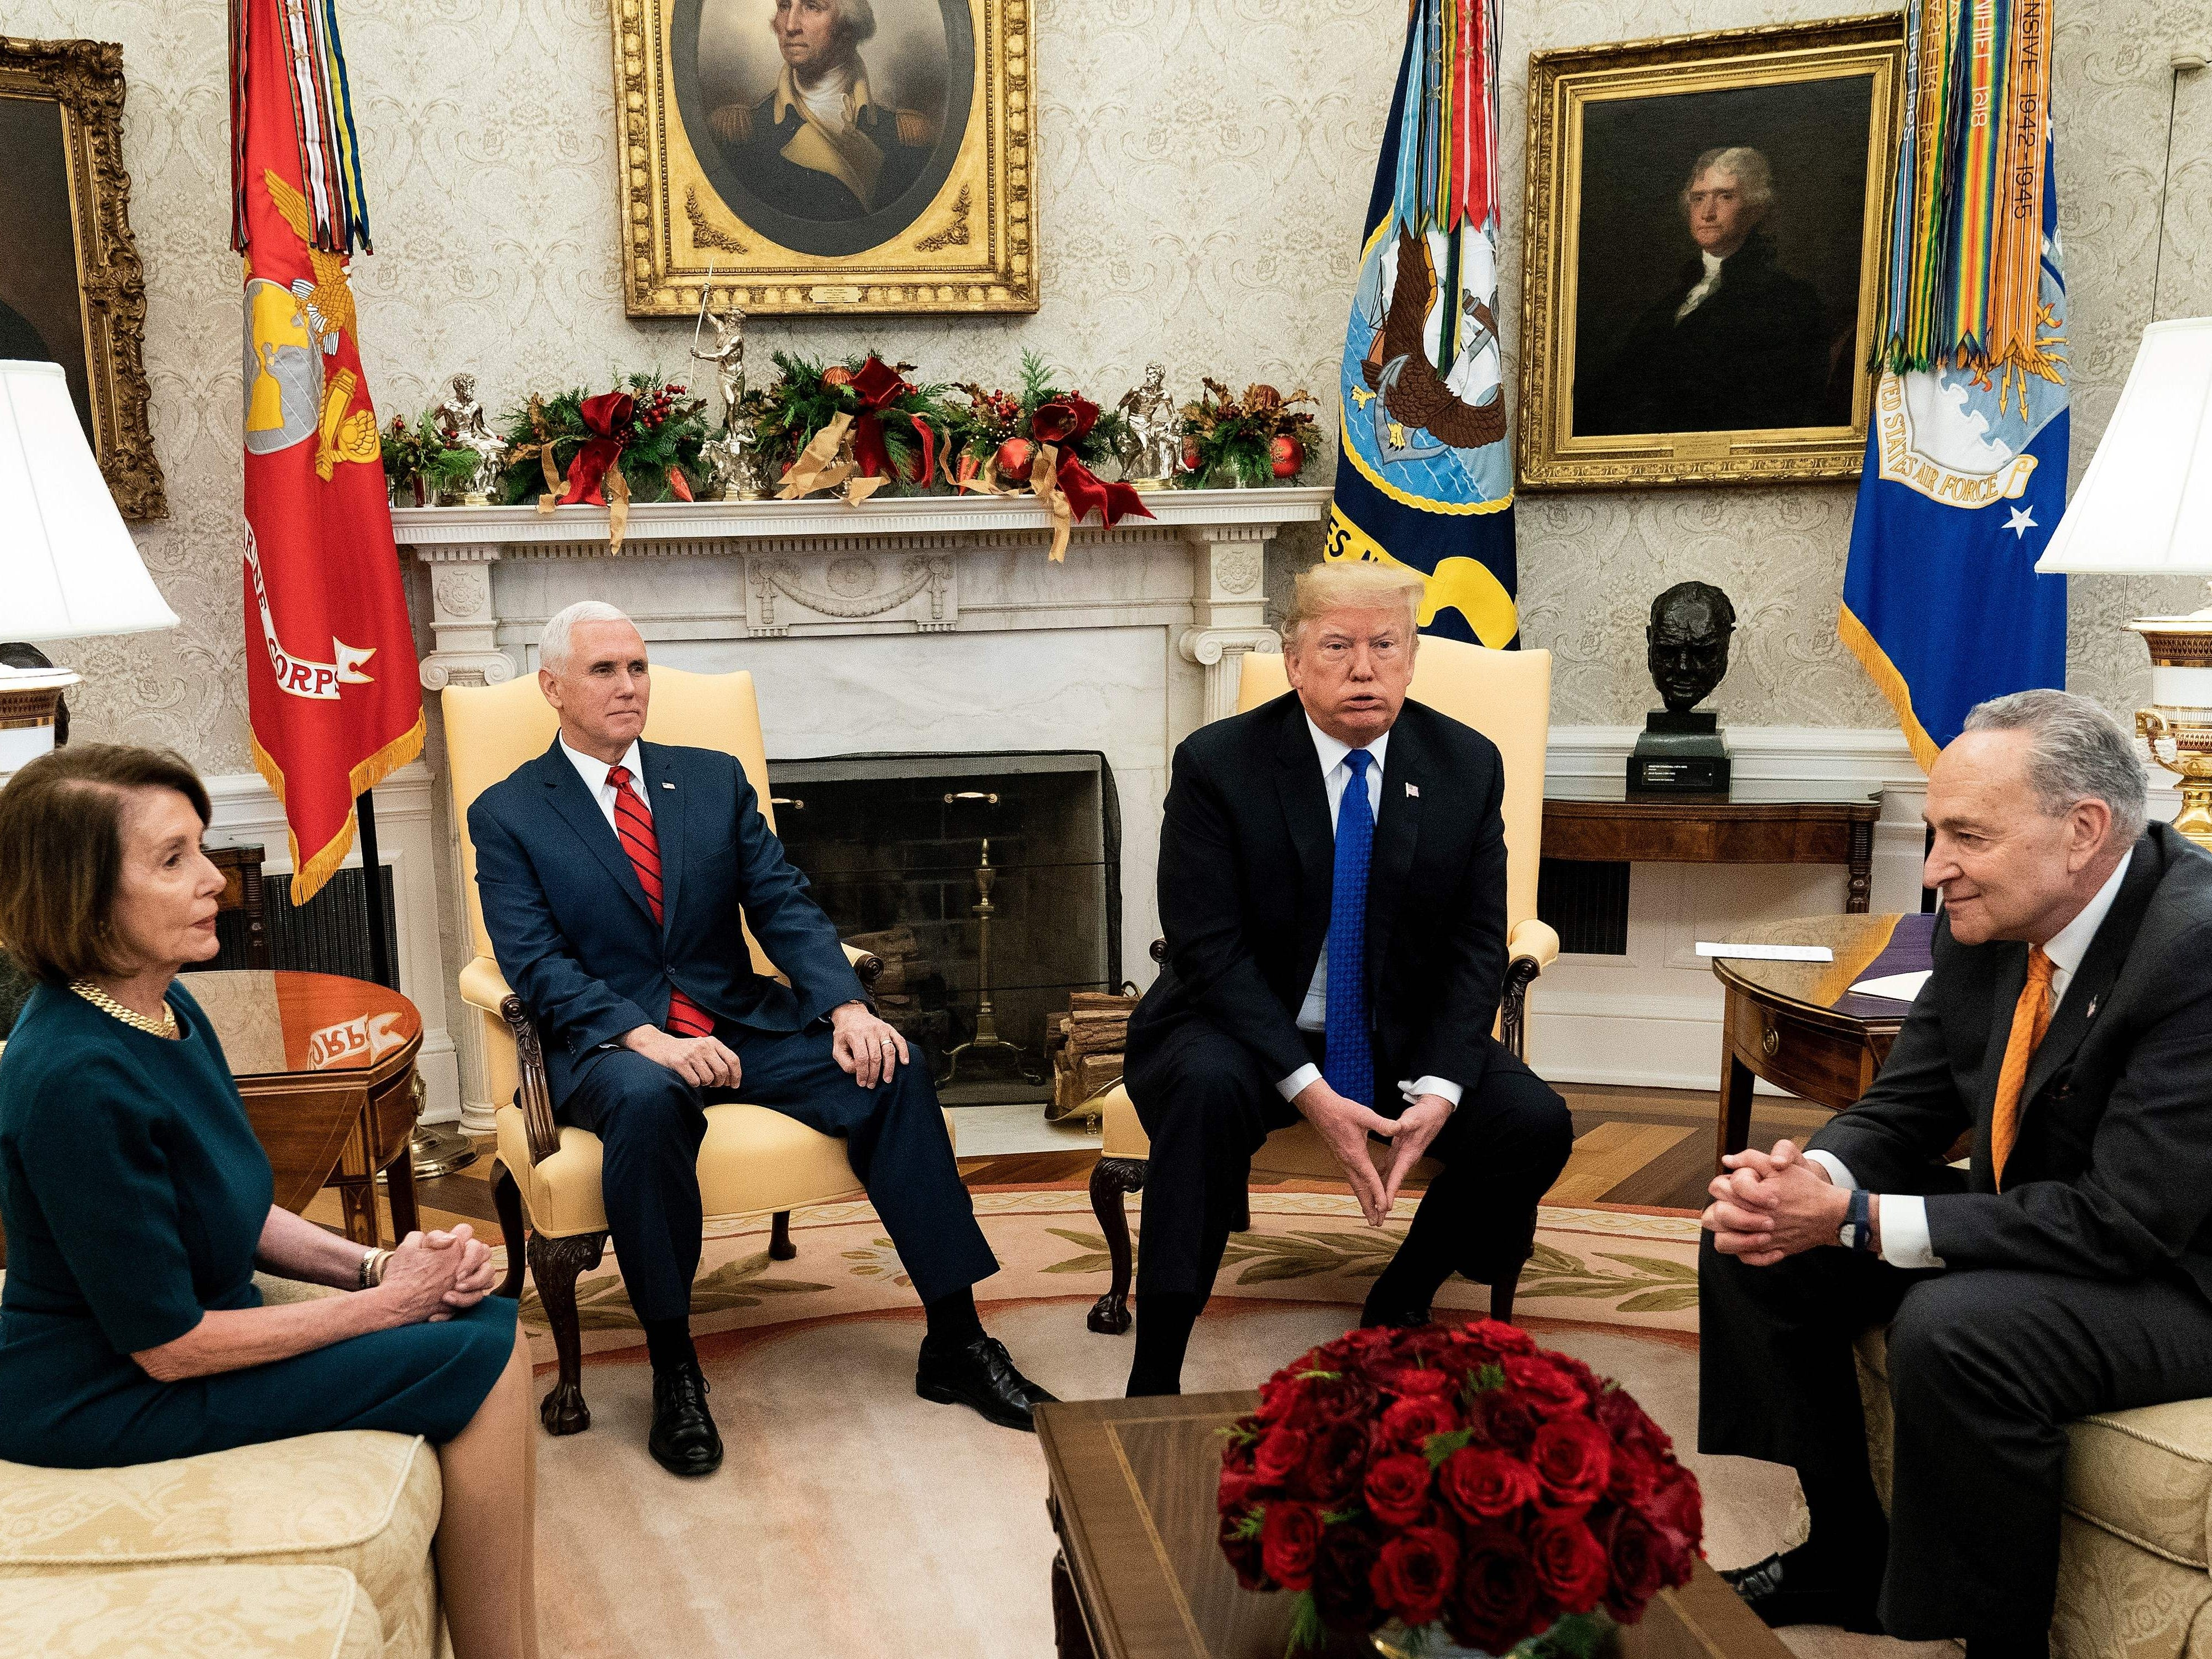 House Minority Leader Nancy Pelosi, Vice President Mike Pence, President Donald Trump, and Senate Minority Leader Charles E. Schumer wait for a meeting at the White House December 11, 2018 in Washington, D.C.